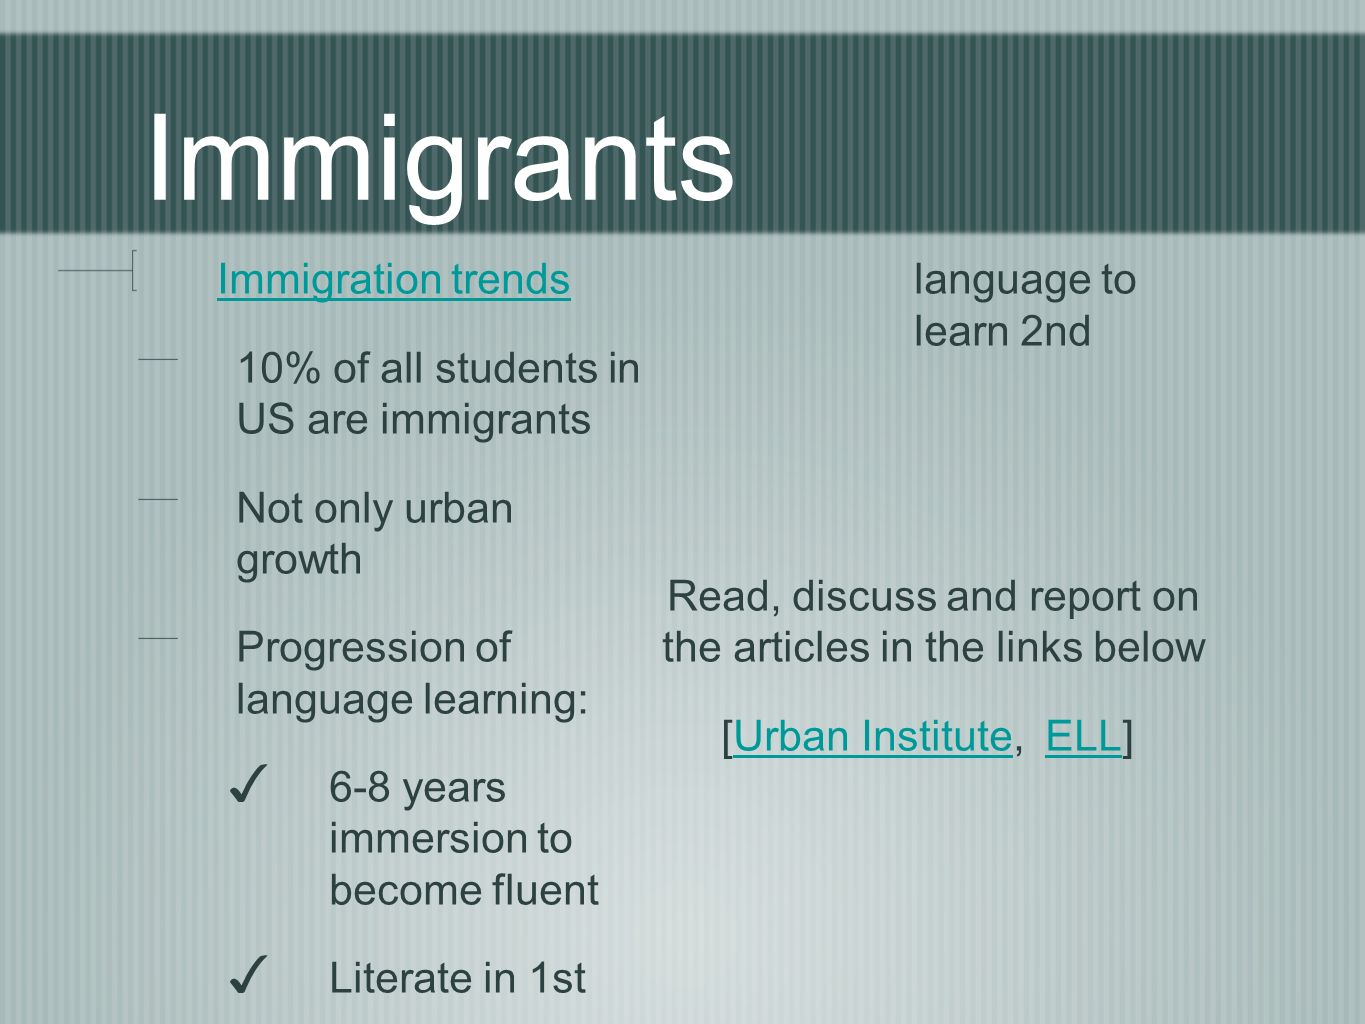 Immigrants Immigration trends 10% of all students in US are immigrants Not only urban growth Progression of language learning: 6-8 years immersion to become fluent Literate in 1st language to learn 2nd Read, discuss and report on the articles in the links below [Urban Institute, ELL]Urban InstituteELL